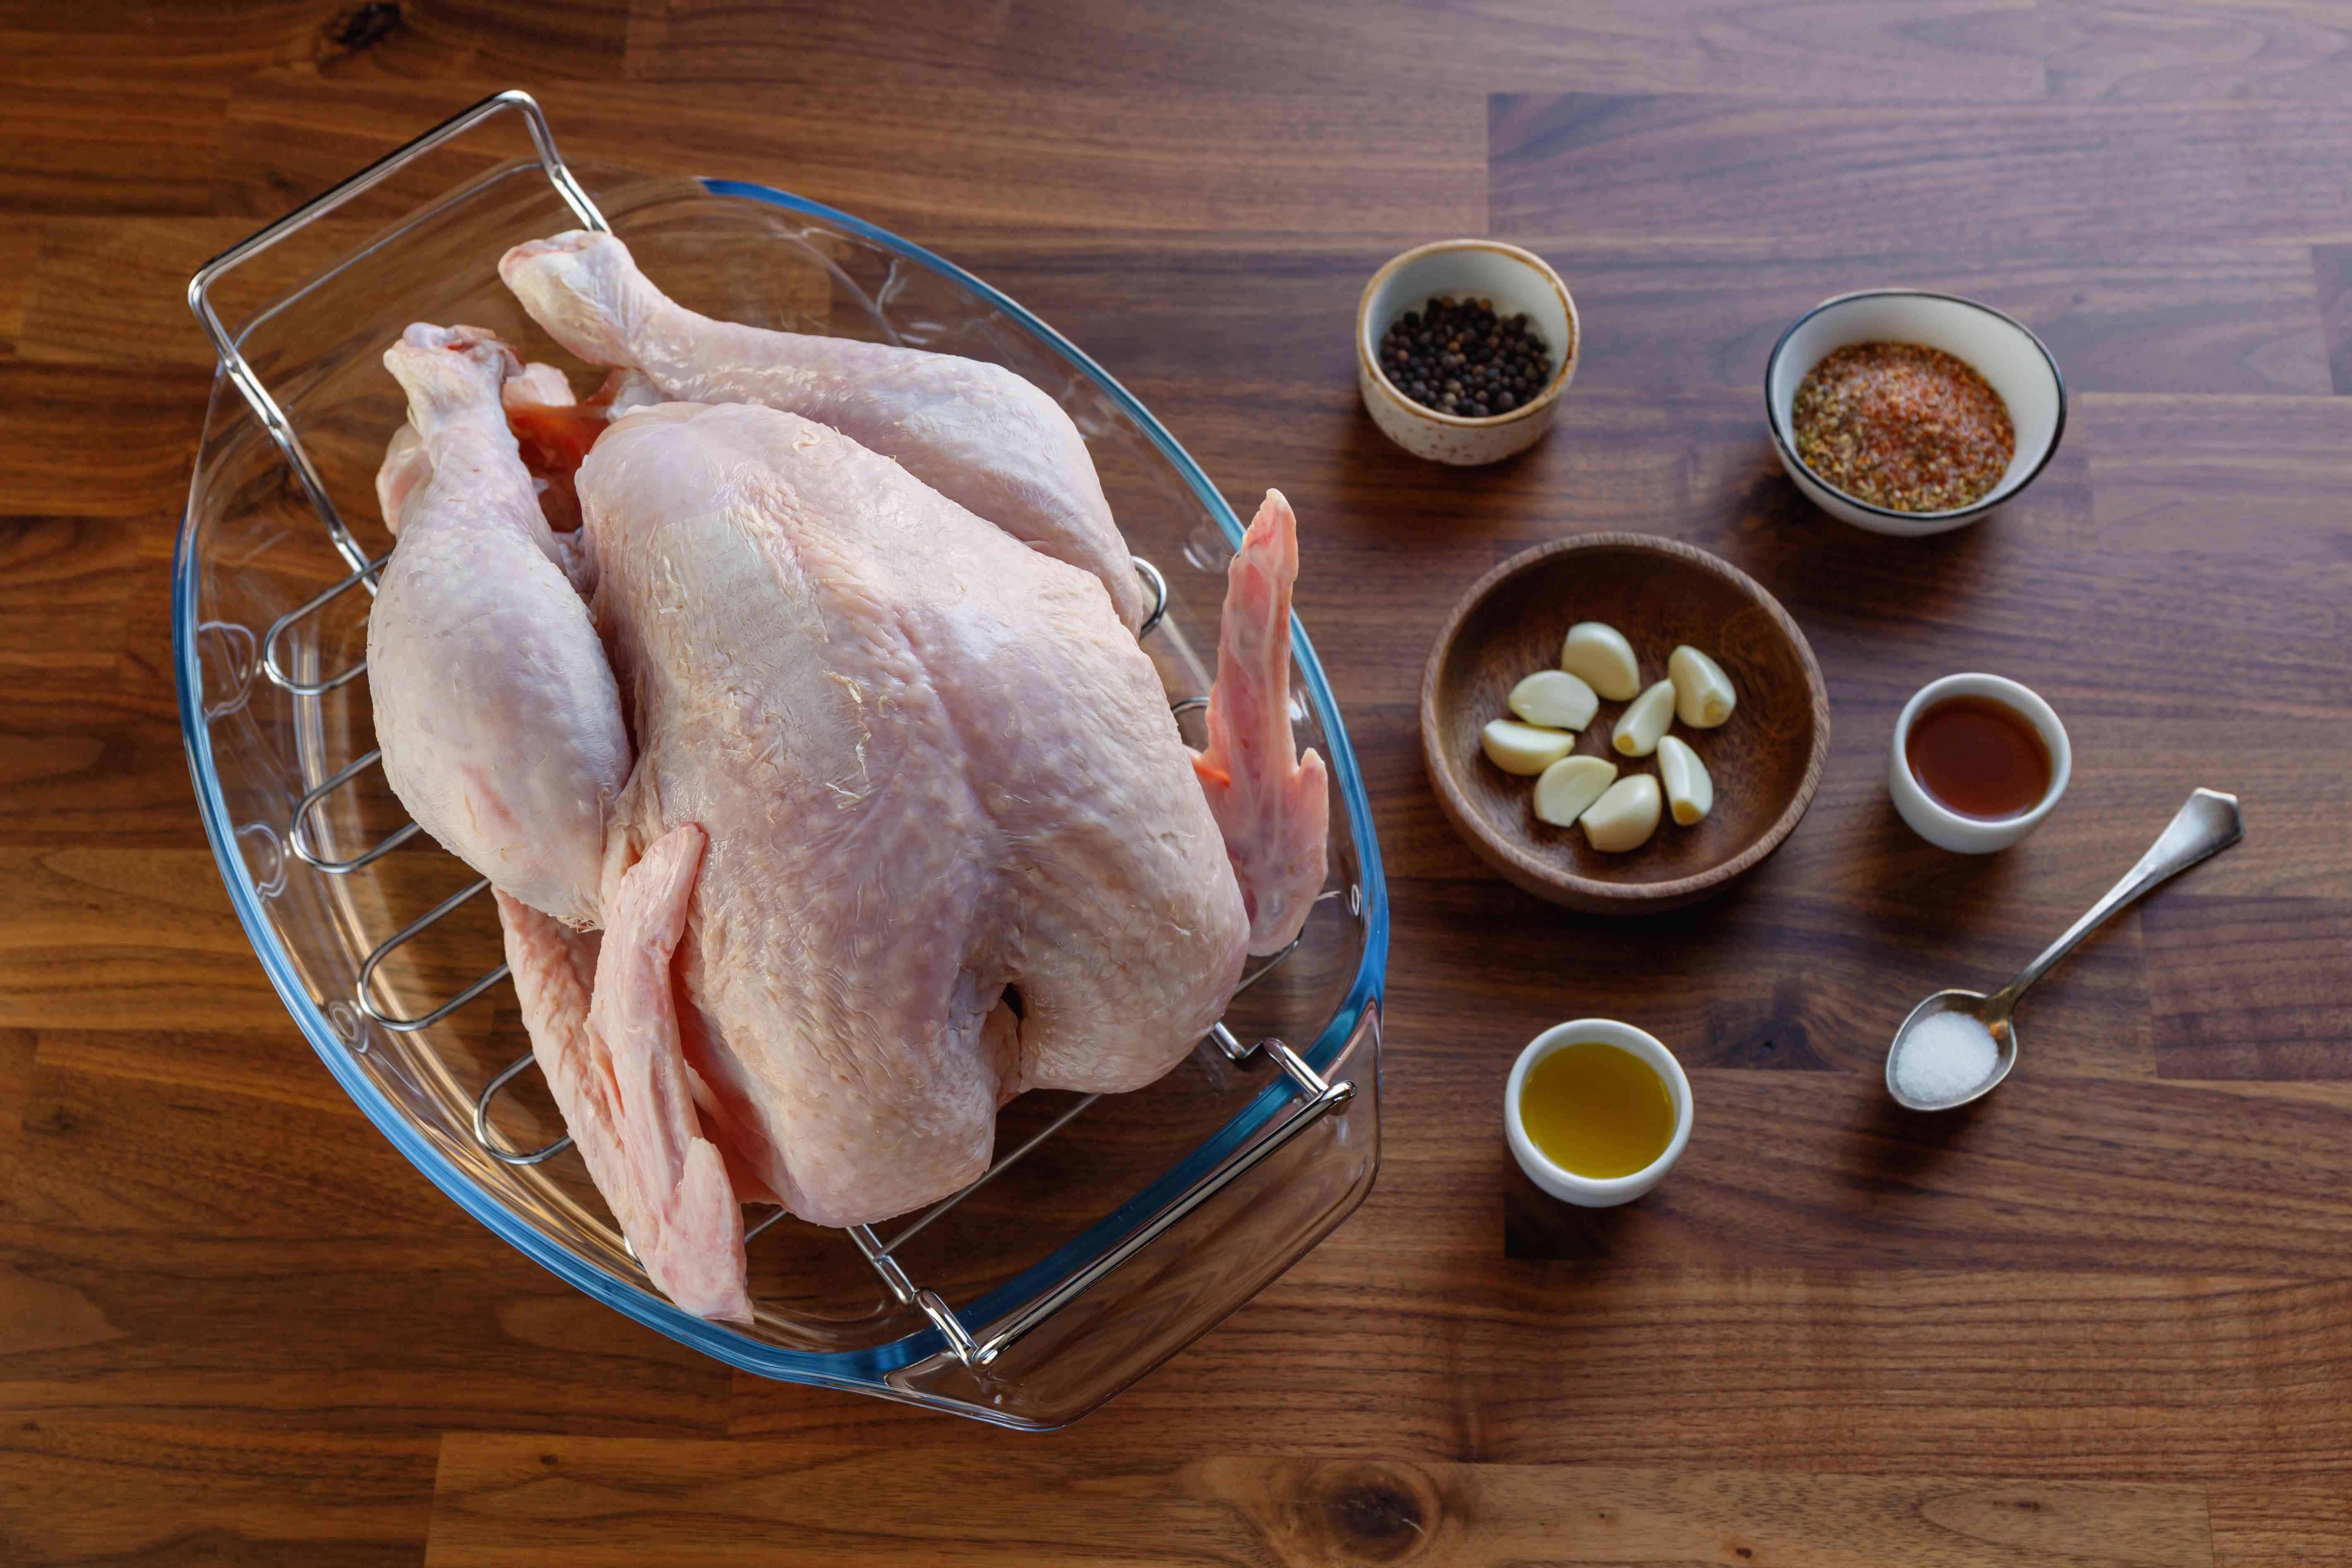 Ingredients for pavochon roasted turkey